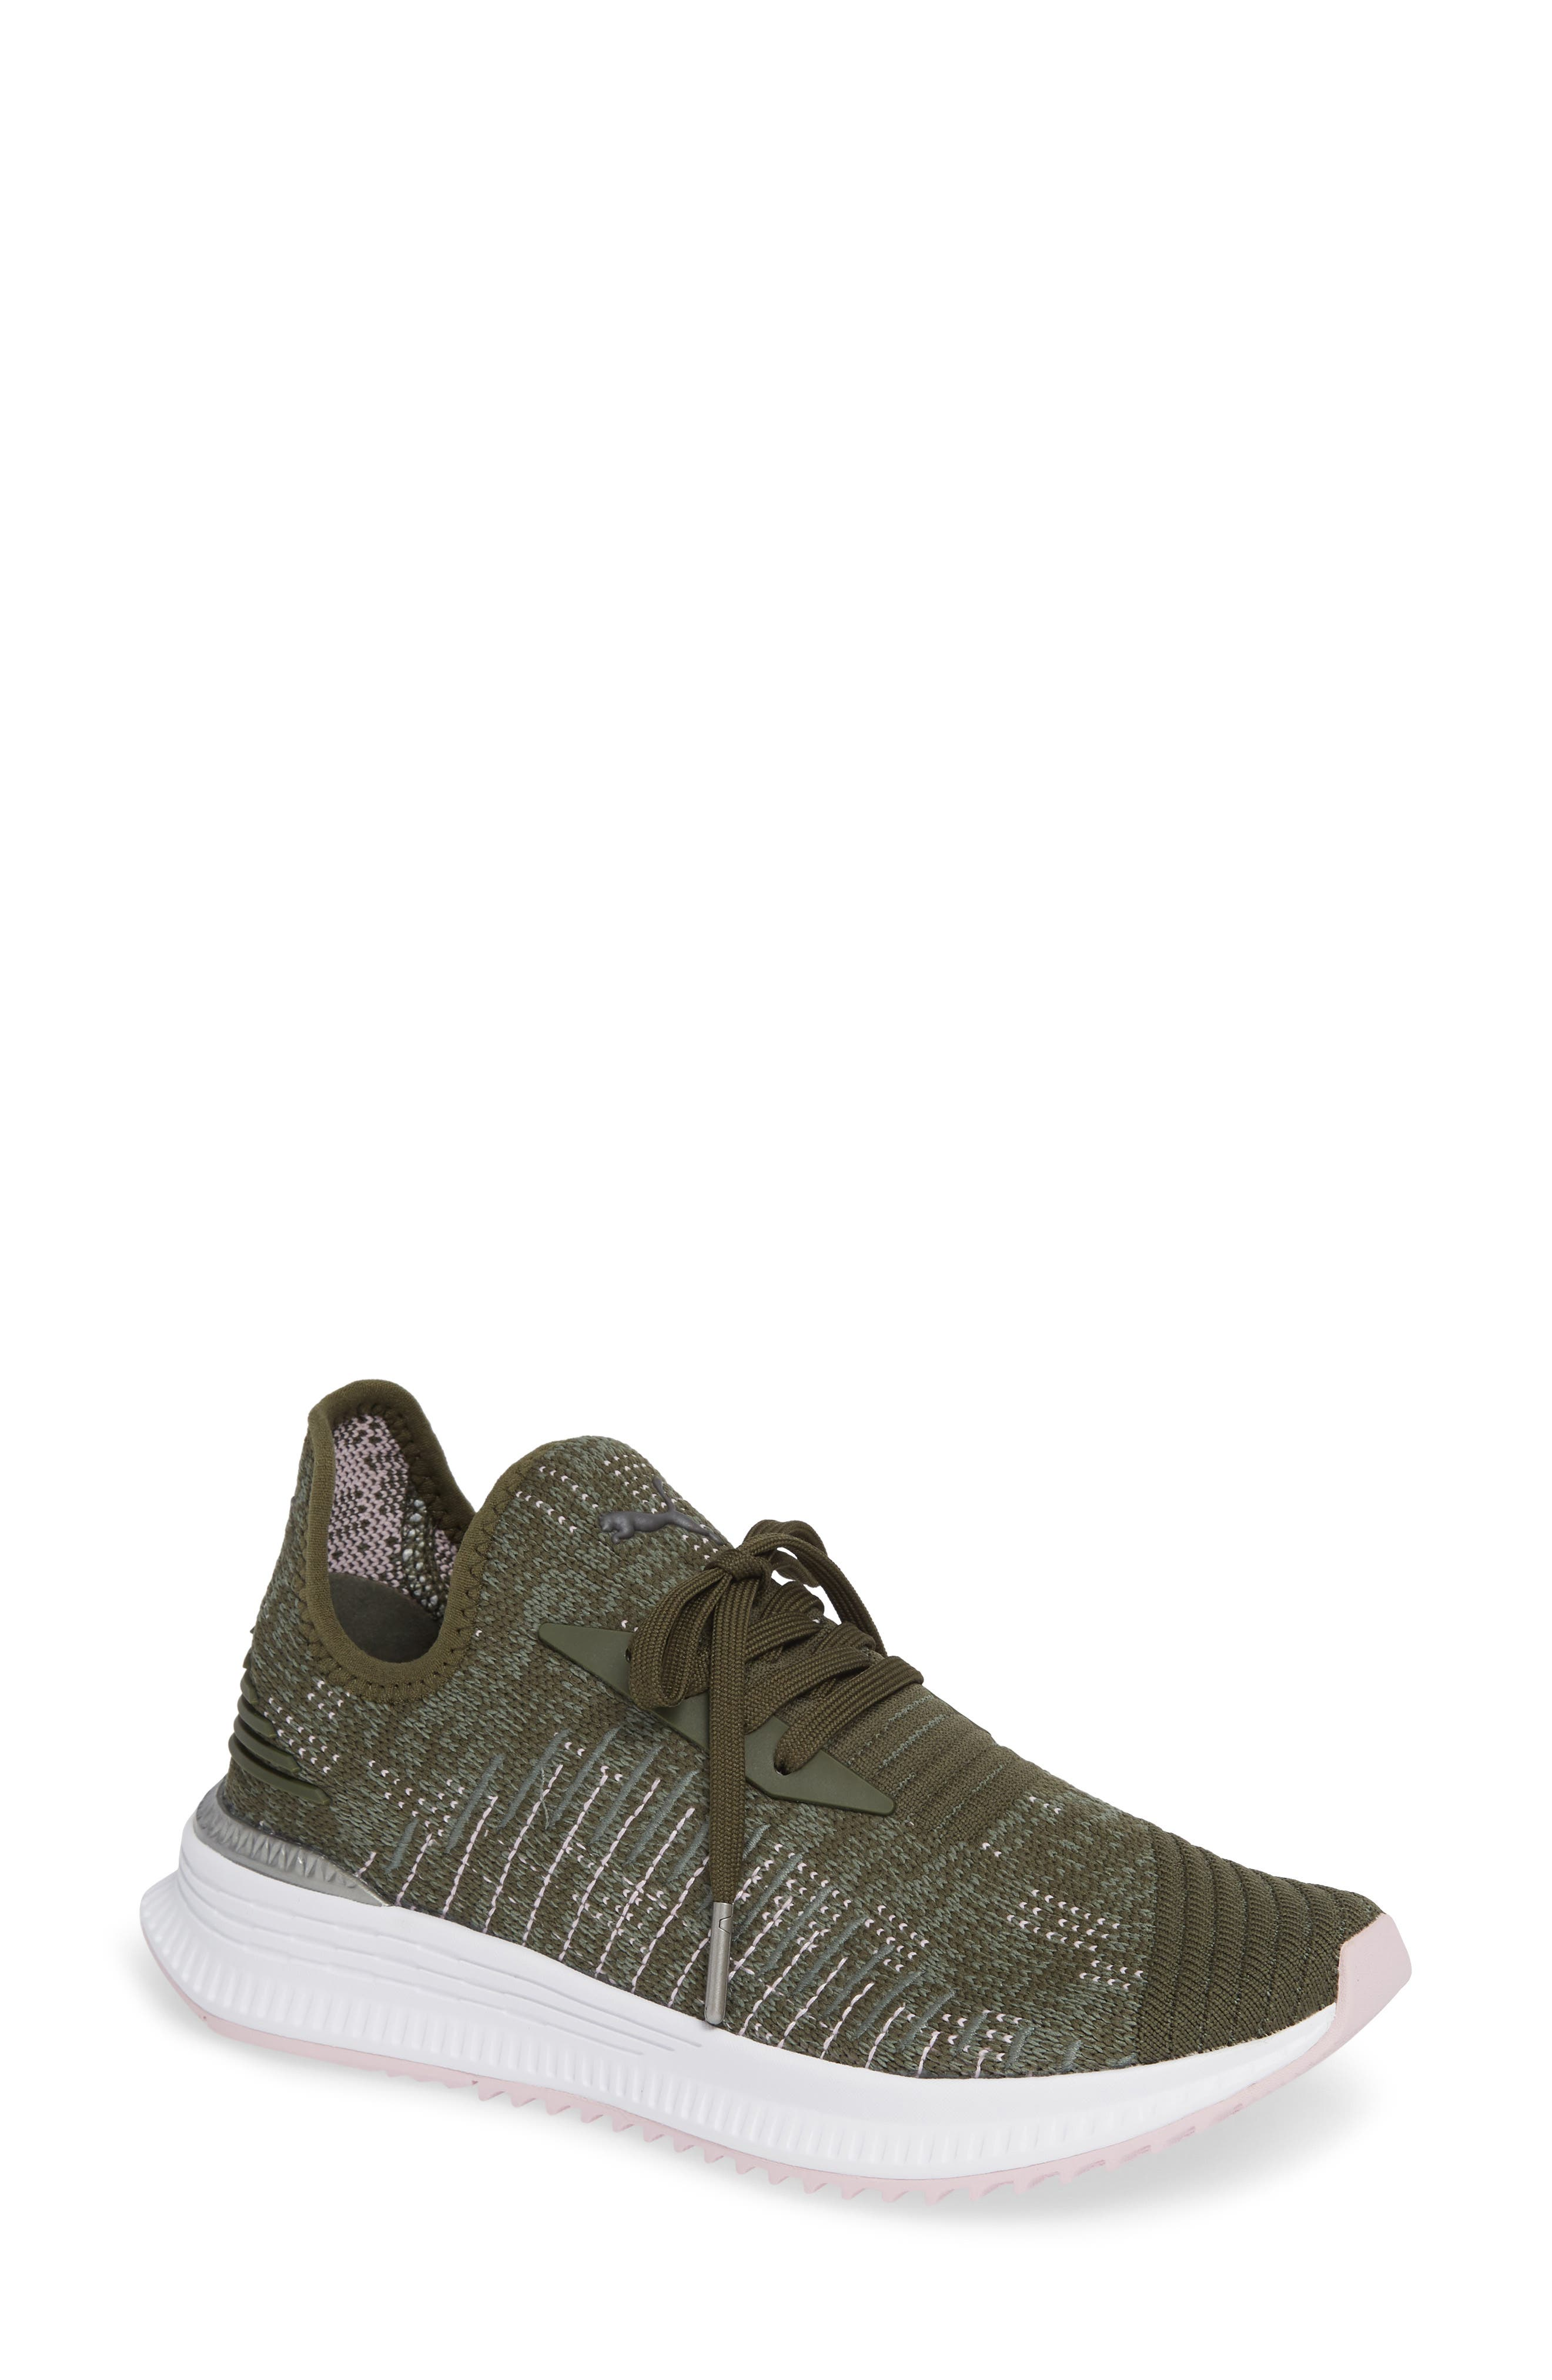 AVID evoKNIT Sneaker,                         Main,                         color, 300